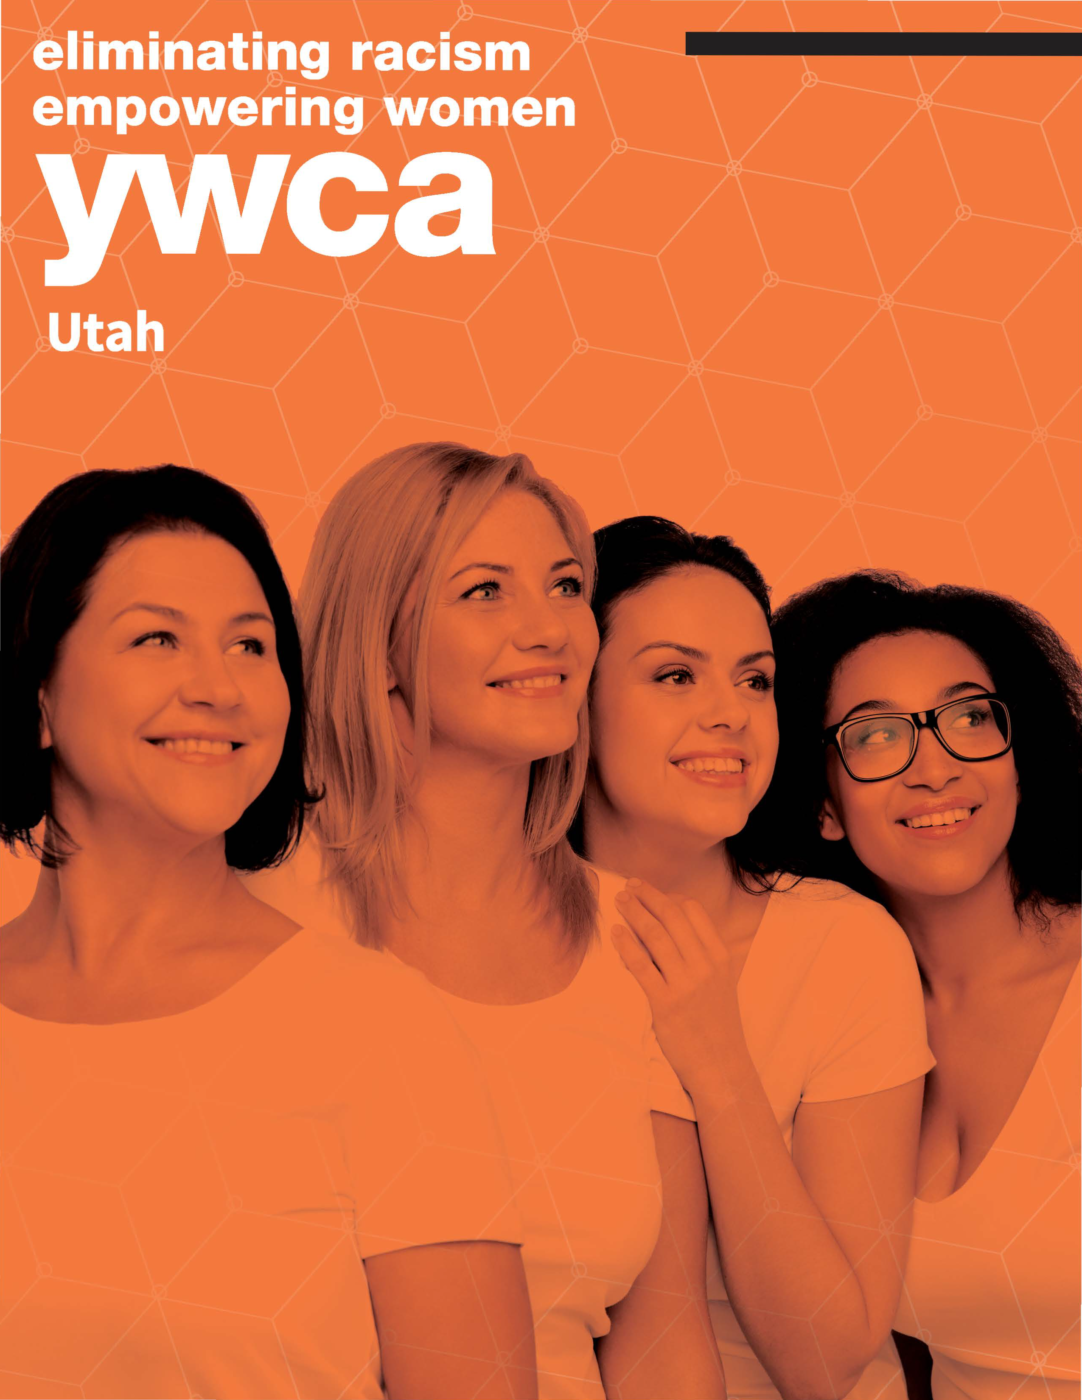 YWCA Utah Annual Report 2014-2015